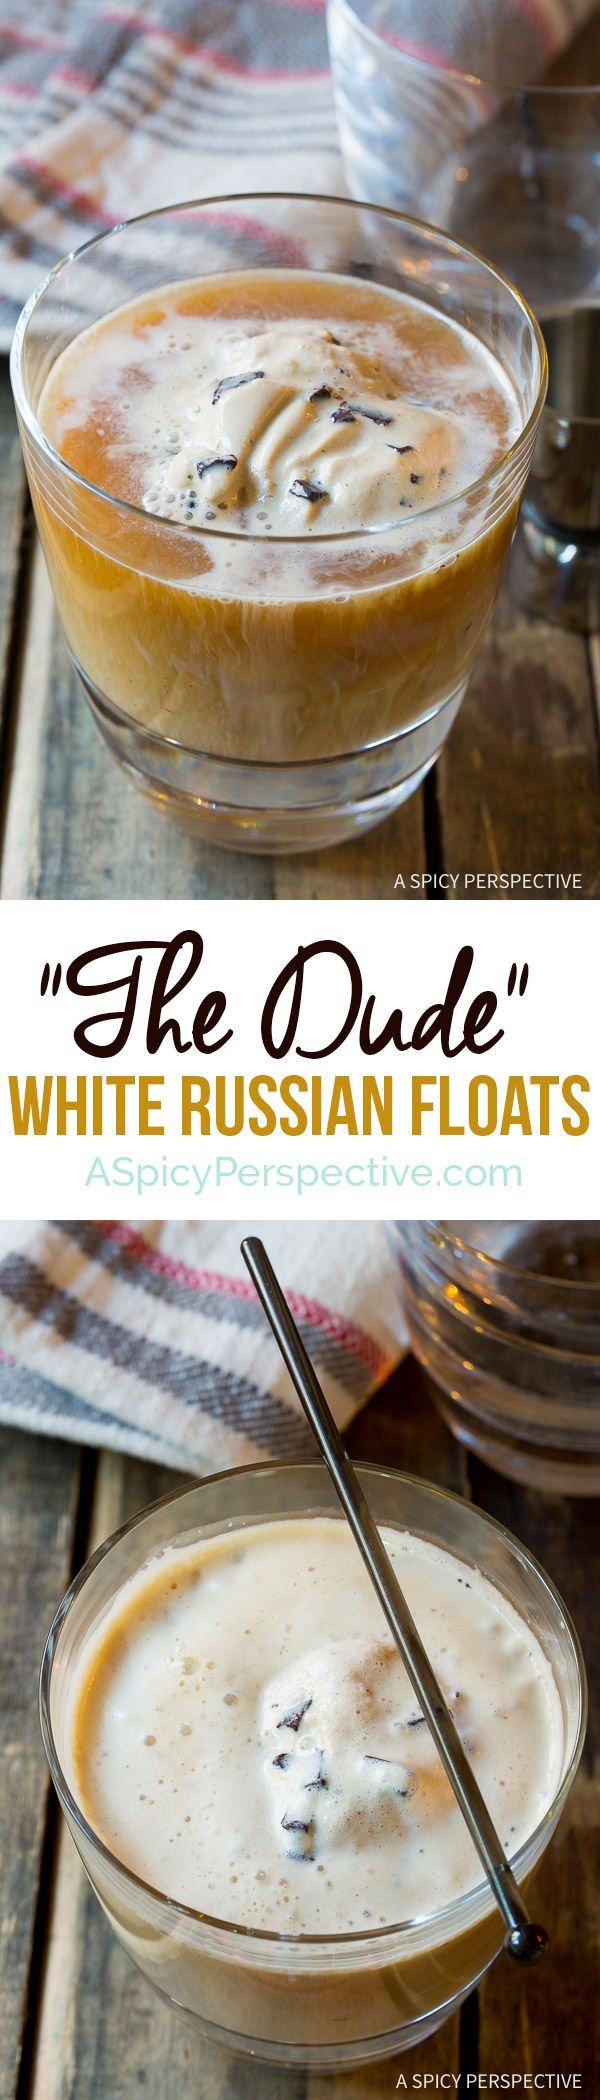 "Celebrate the season with ""The Dude"" White Russian Floats on ASpicyPerspective.com #holiday #cocktail"